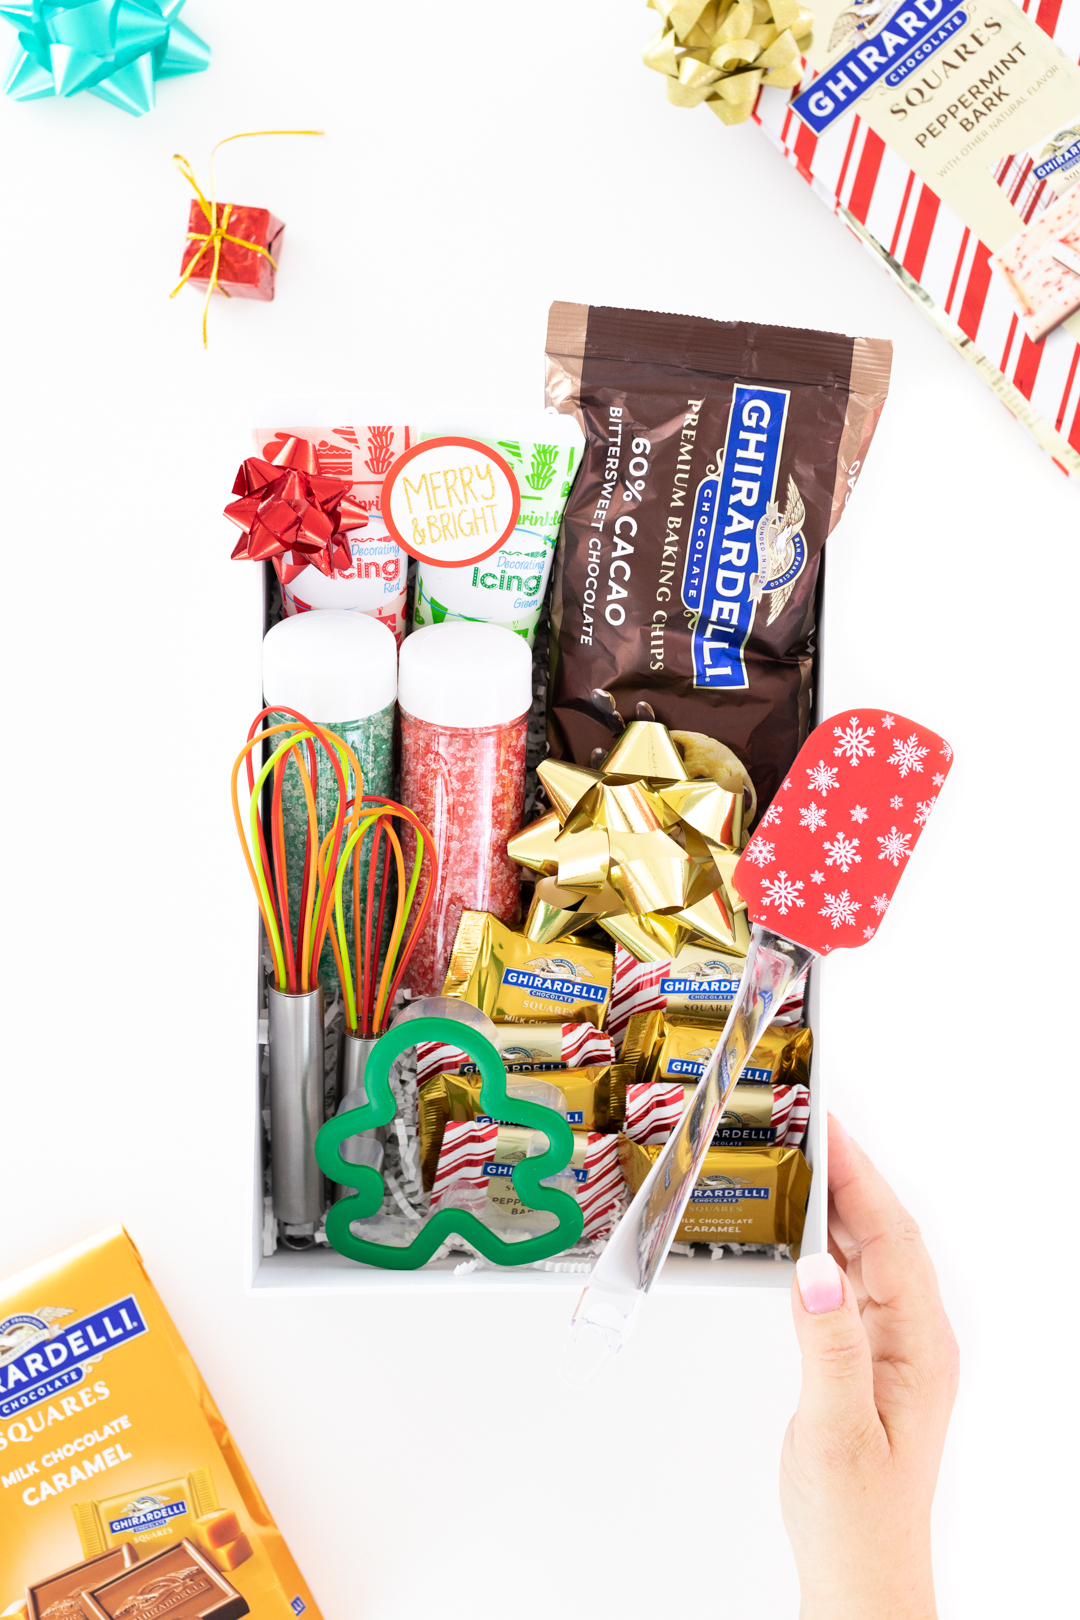 Chocolate Baking Gift Box with chocolate chips, sprinkles, icings, spatula and whisks.